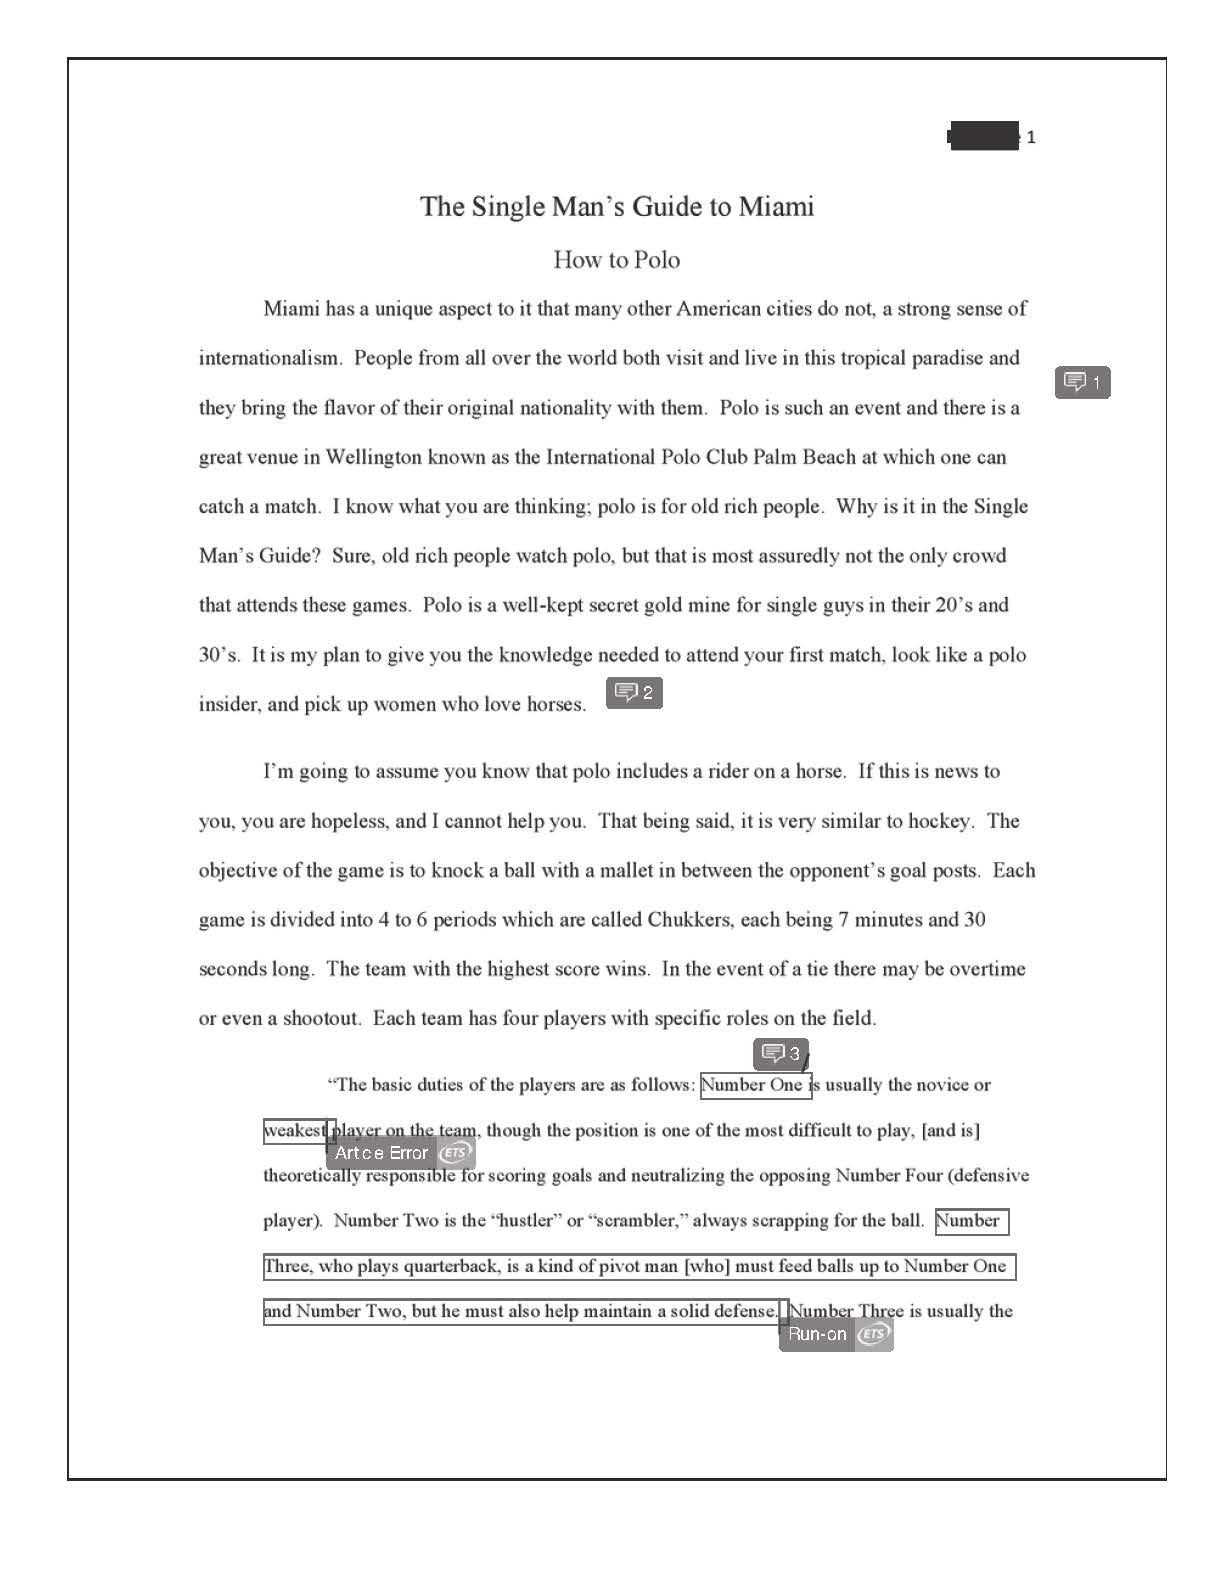 samples of informative essays write an informative essay  informative essay samples informative essay writing help how to sample informative essay oglasi coinform essay informative